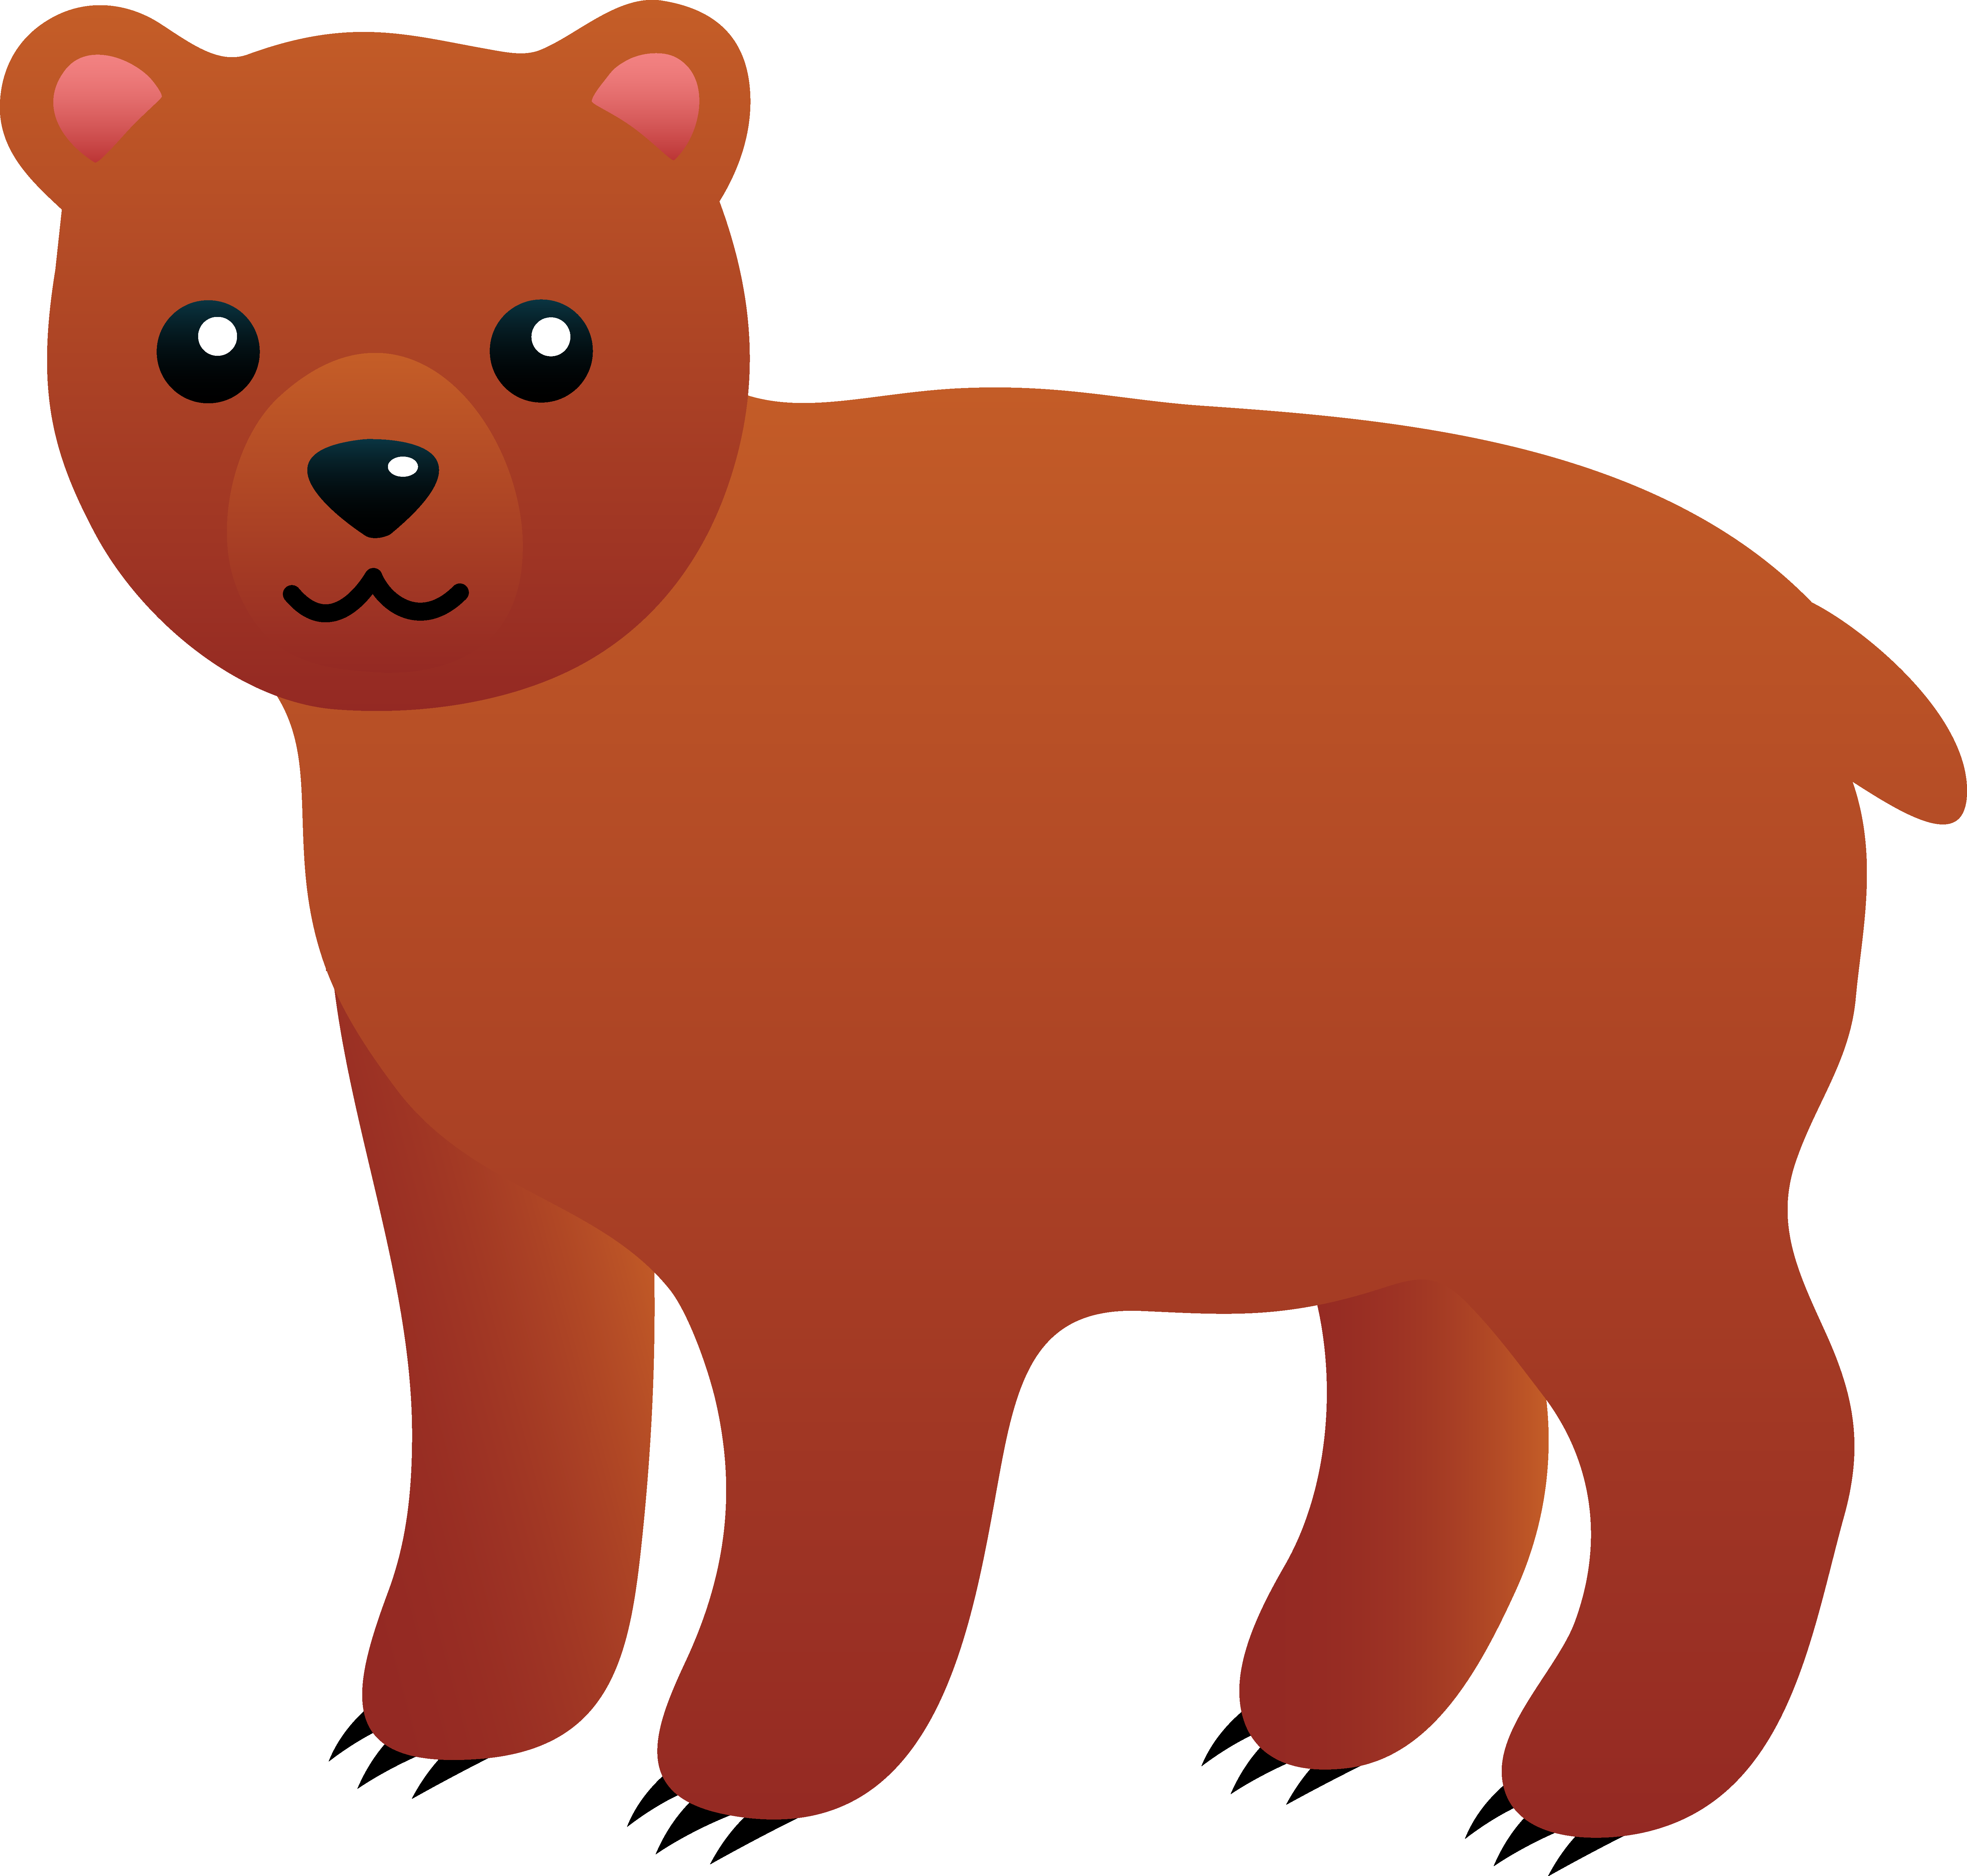 Bearcub clipart svg royalty free stock Free Bear Cub Cliparts, Download Free Clip Art, Free Clip Art on ... svg royalty free stock